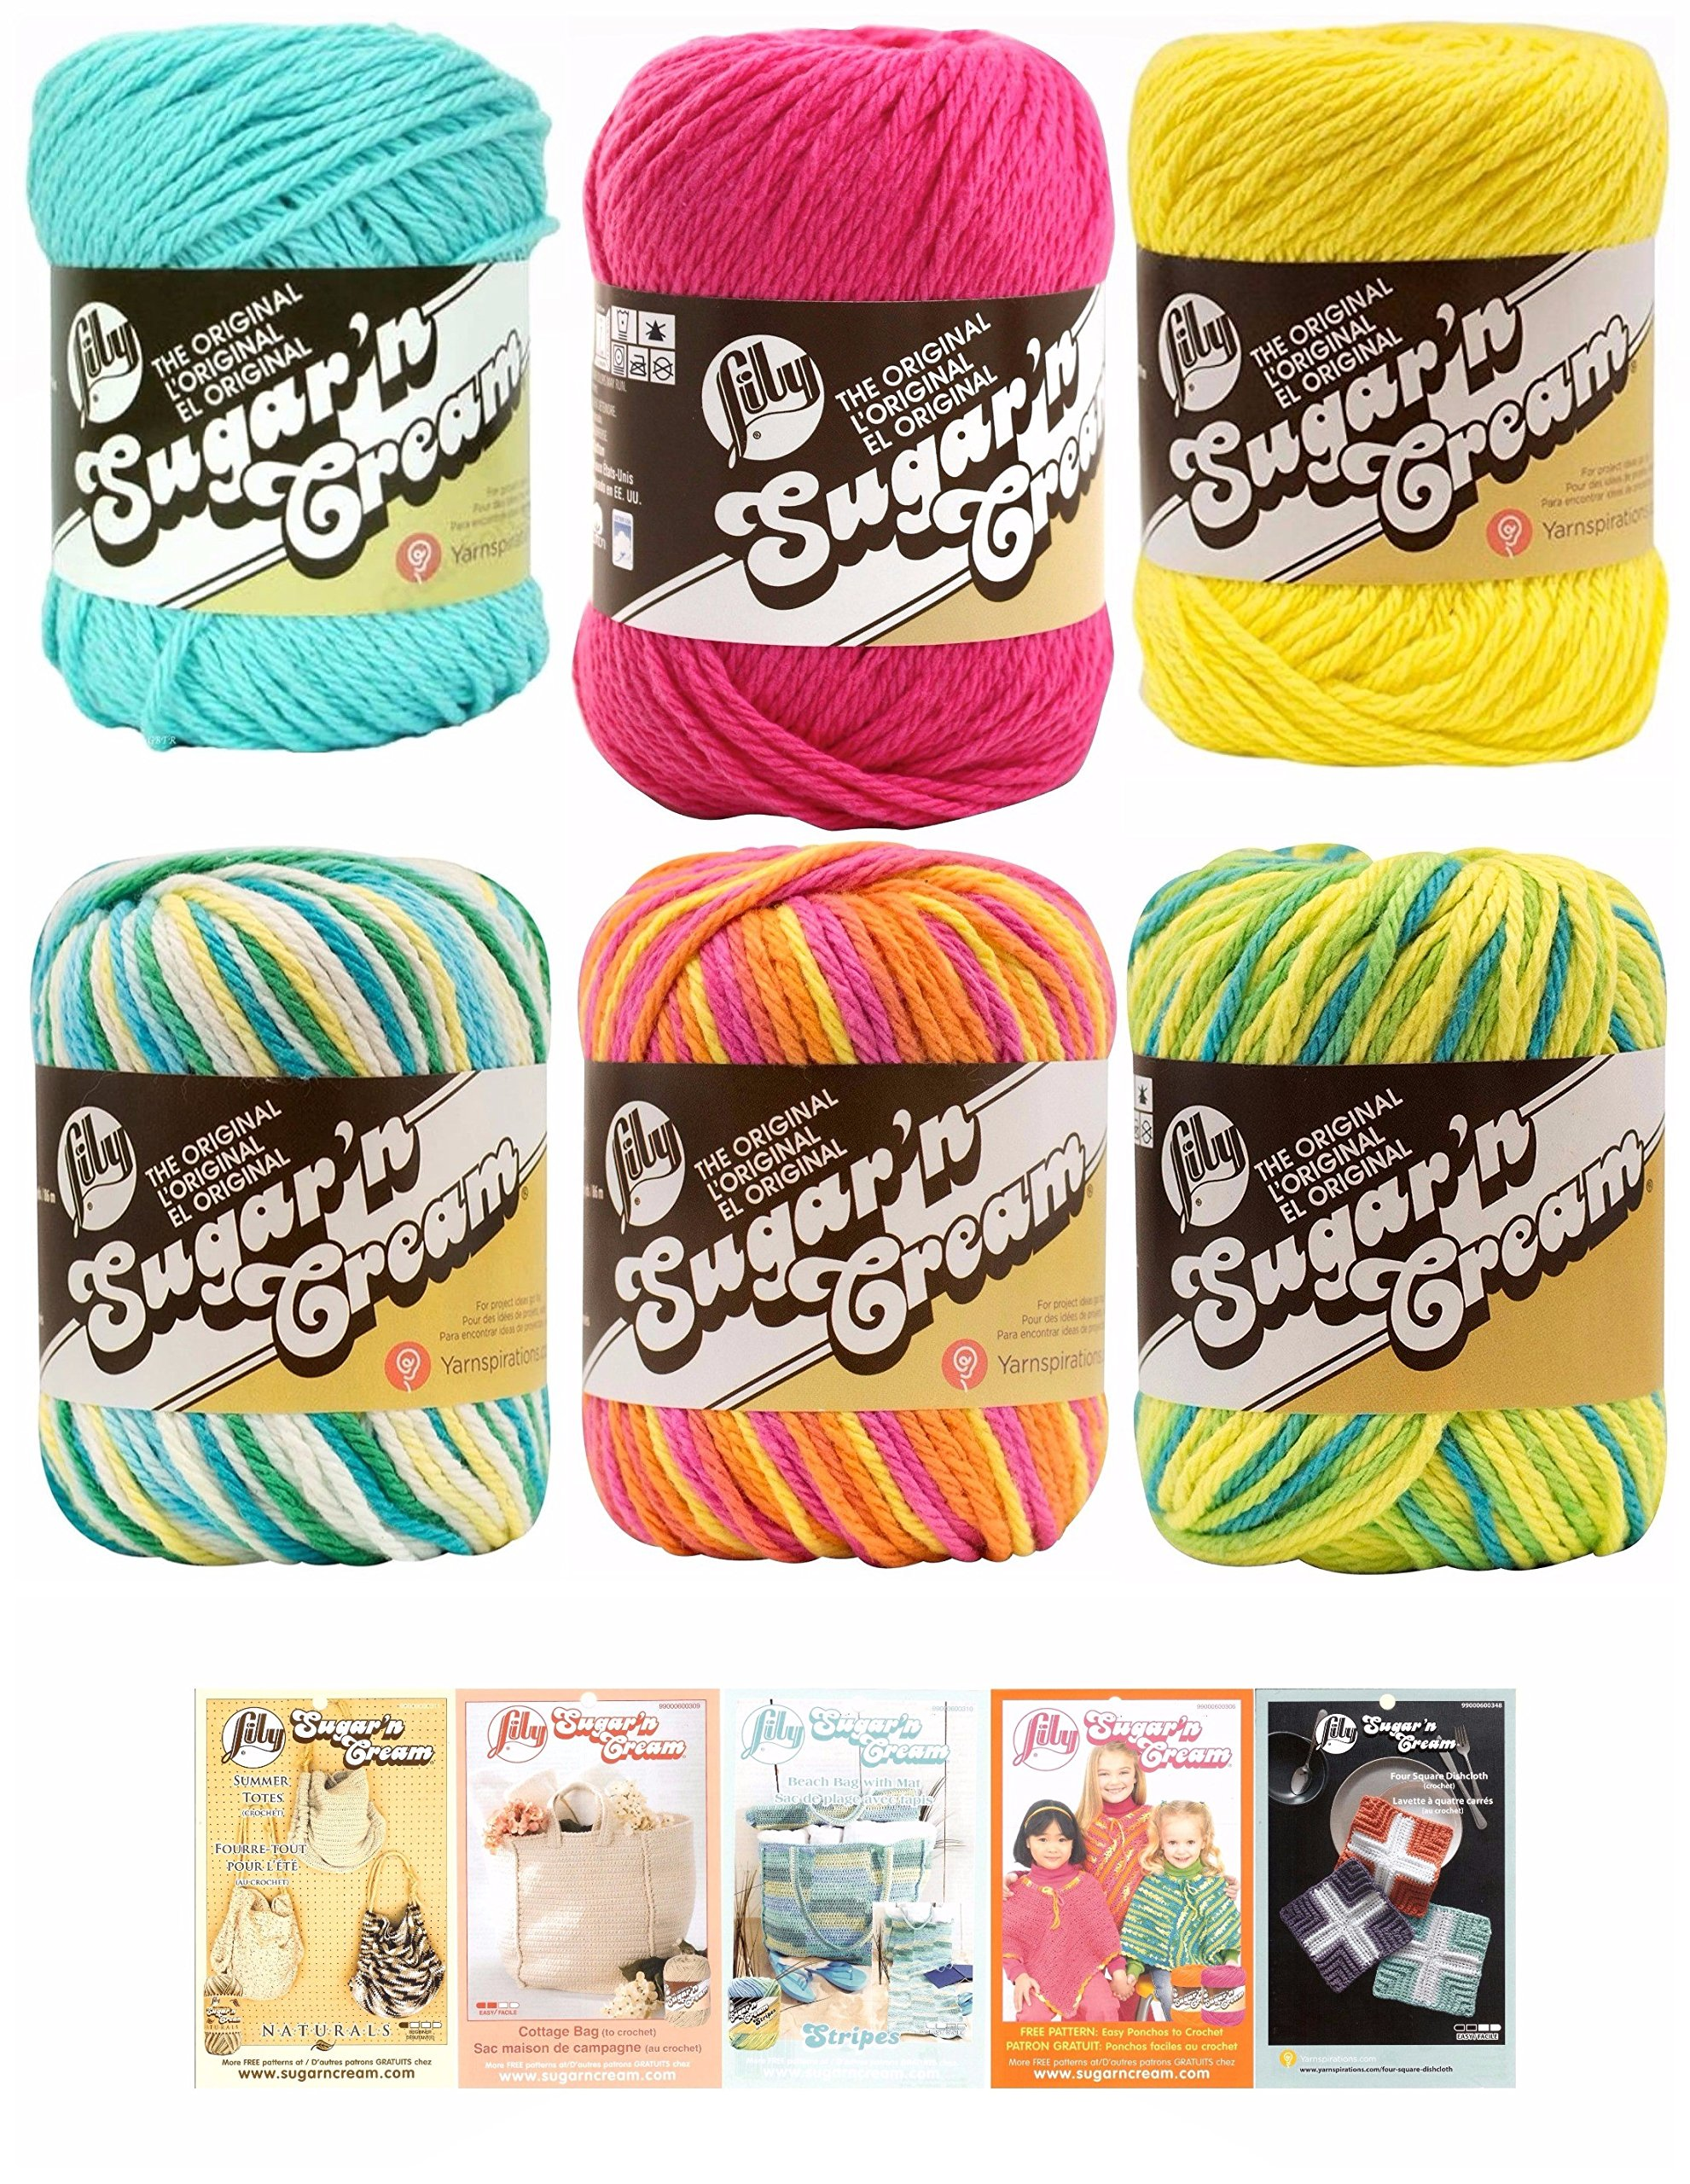 Lily Sugar n' Cream Variety Assortment 6 Pack Bundle 100% Cotton Medium 4 Worsted with 5 Patterns (Multi 5)